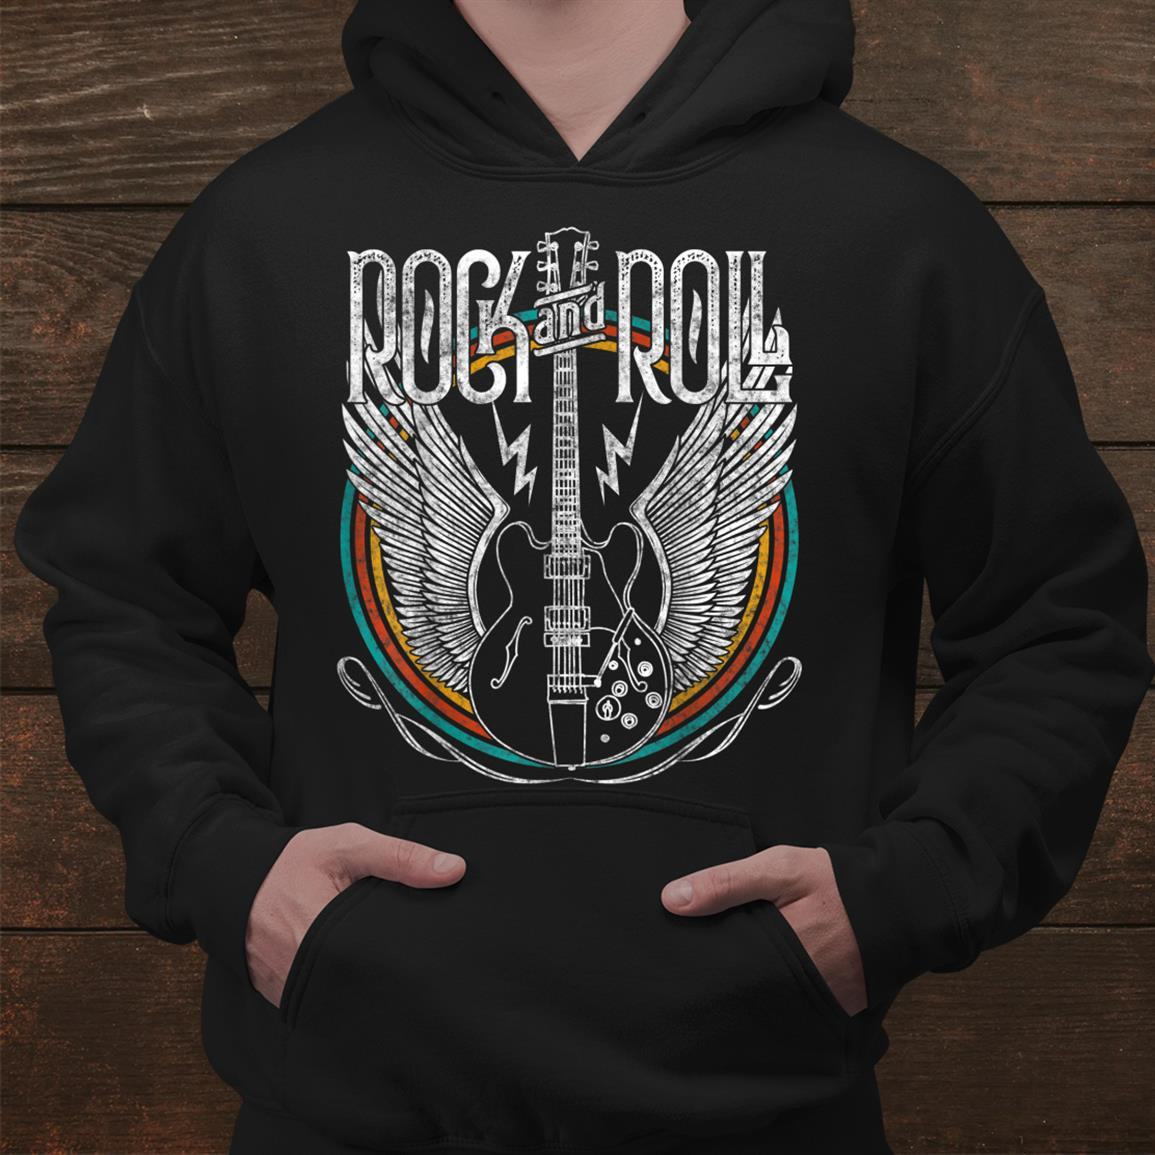 Retro Style0s Rockand & Roll Music Guitar Wings Vintage Shirt